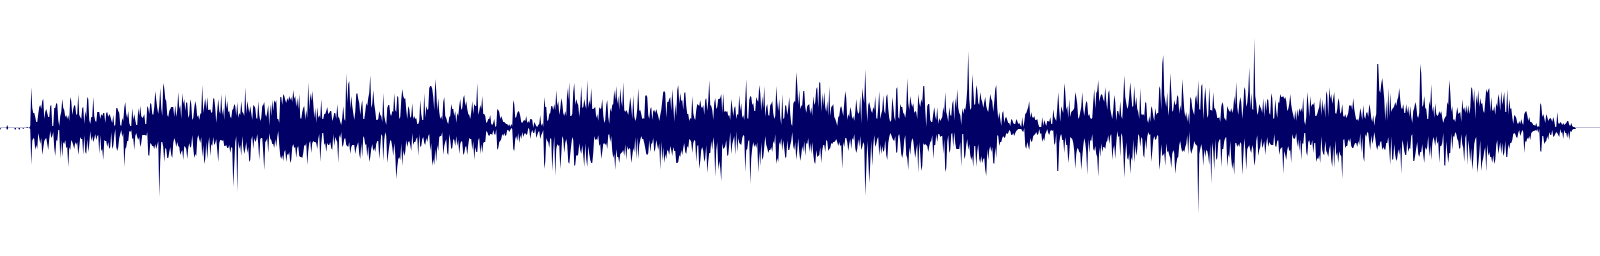 waveform of track #159597